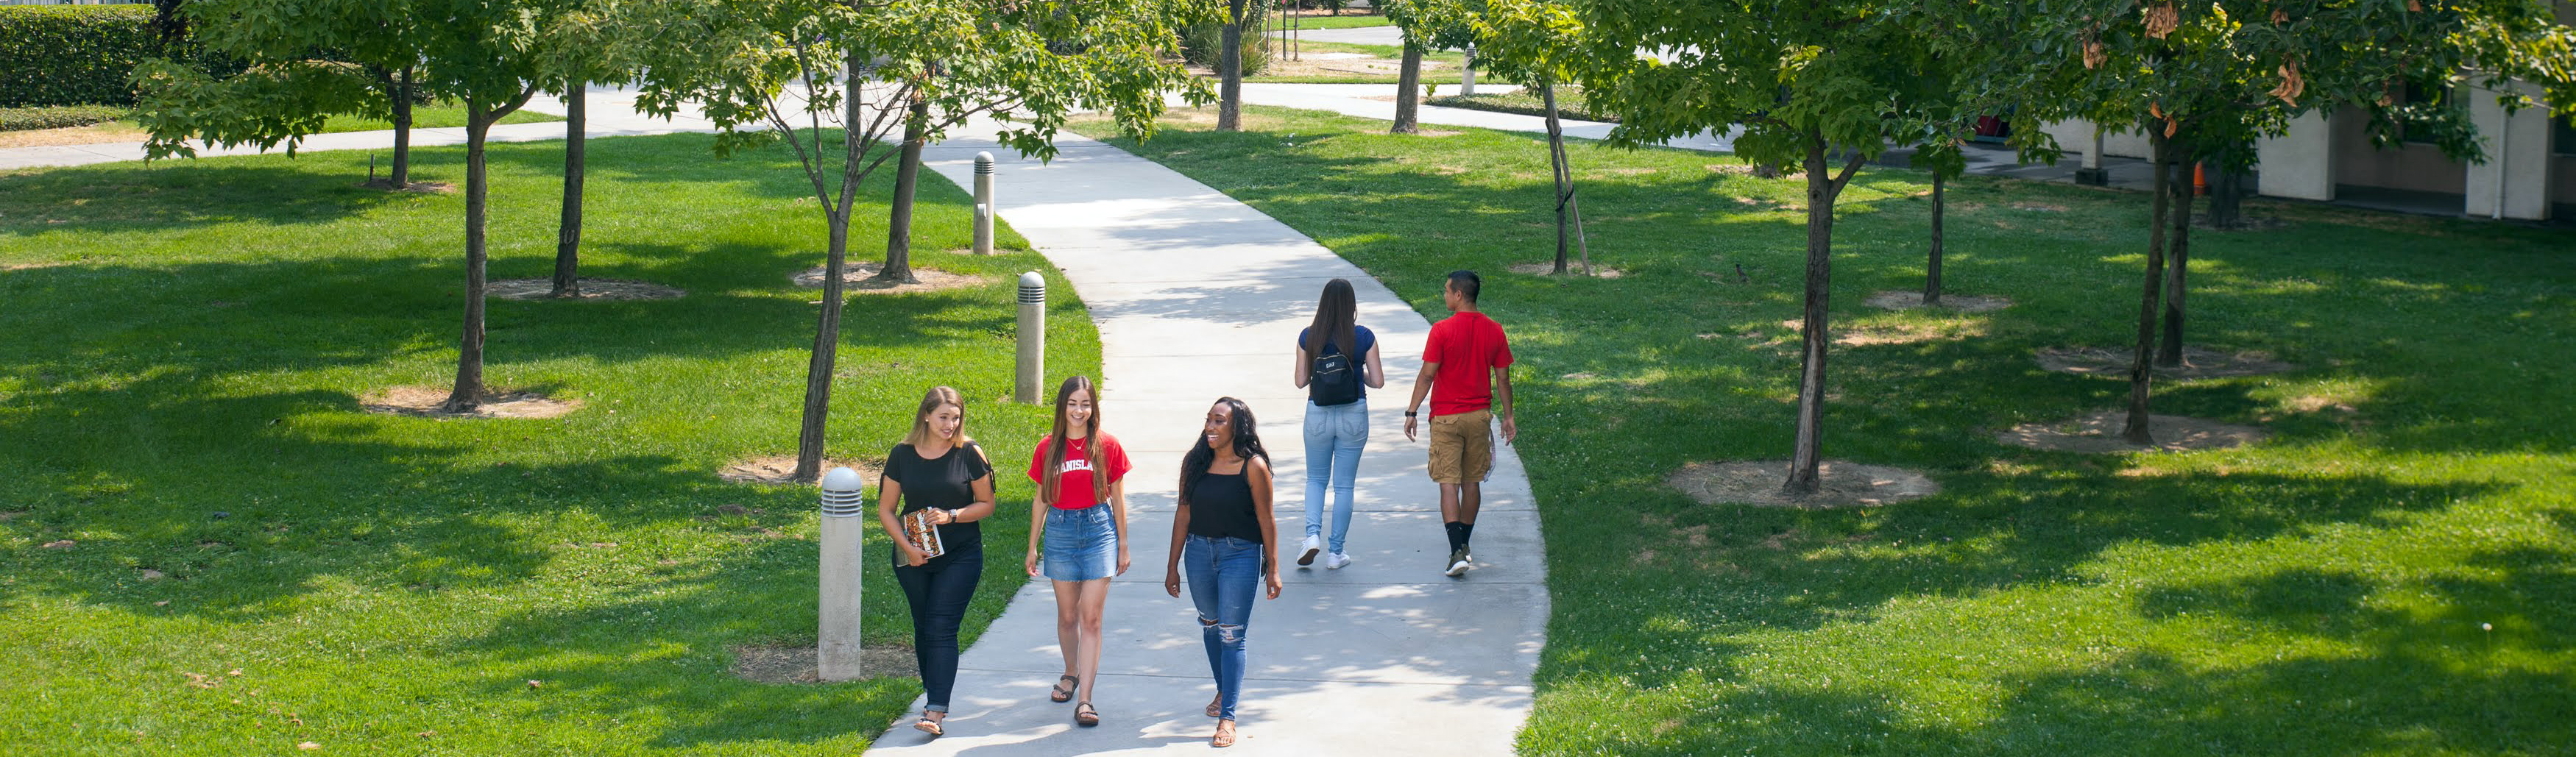 Students walking along pathway